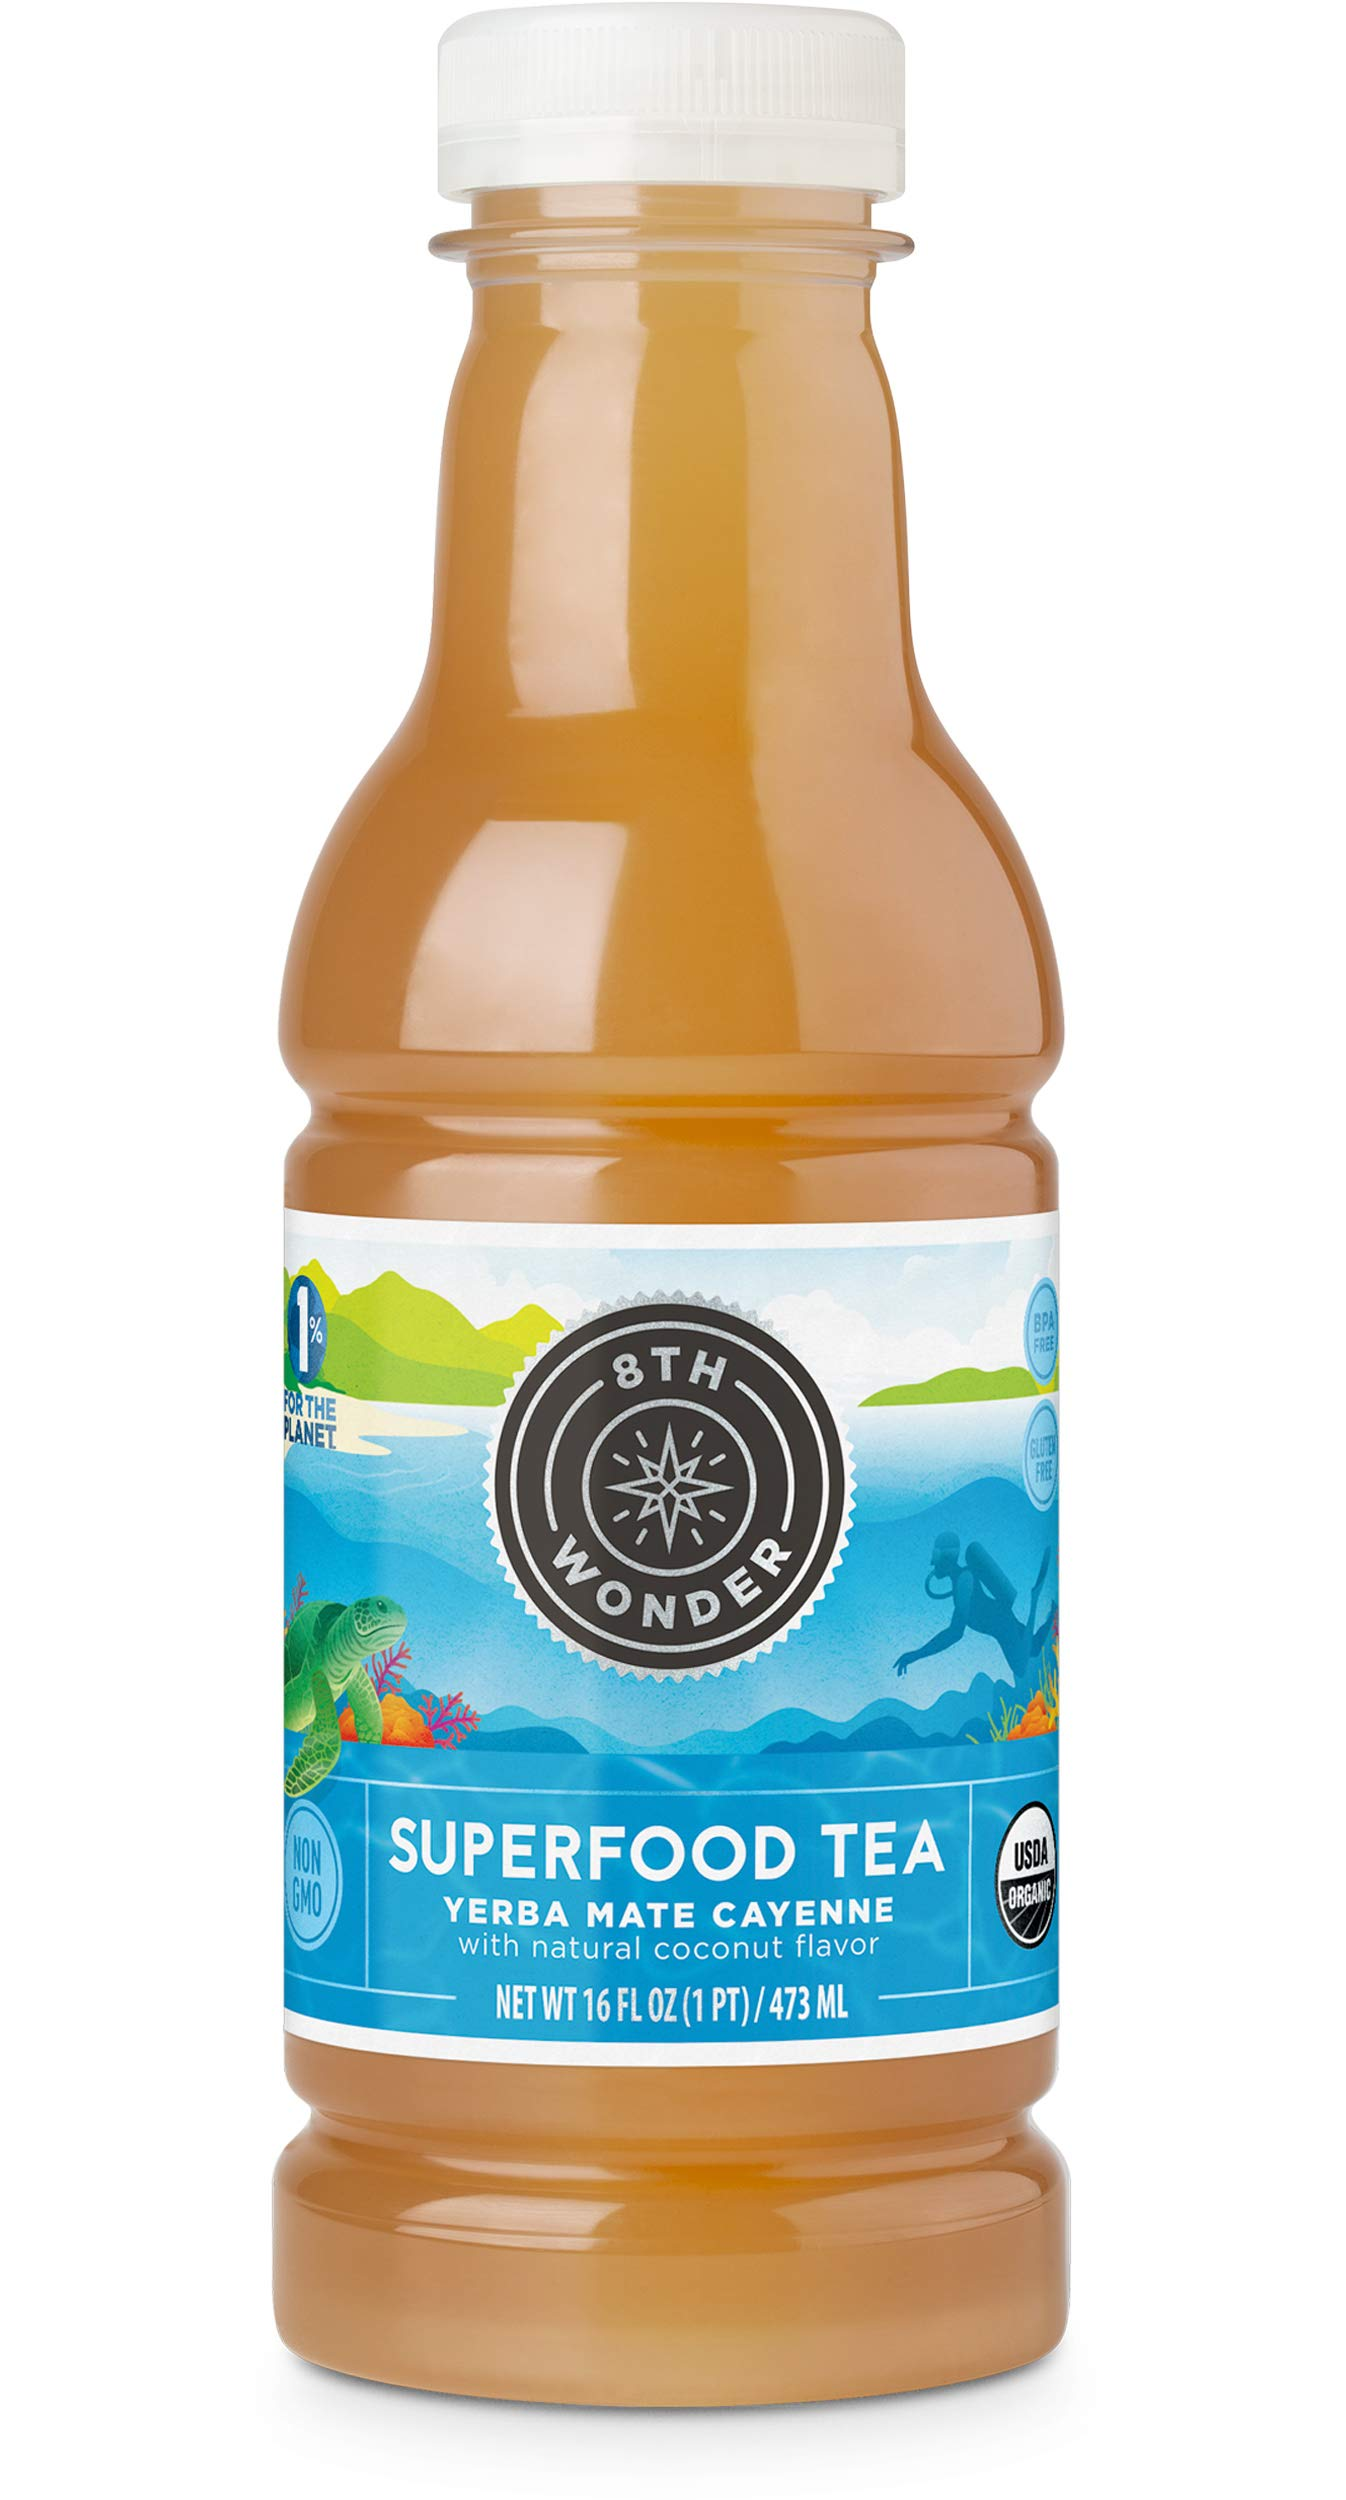 8th Wonder Organic Yerba Mate, All Natural, Low Calorie Superfood Iced Tea  Yerba Mate Cayenne Tea   16 Fluid Ounce Bottled Iced Tea Pack of 6   Boost Energy, Reduce Fatigue, Promote Mental Clarity